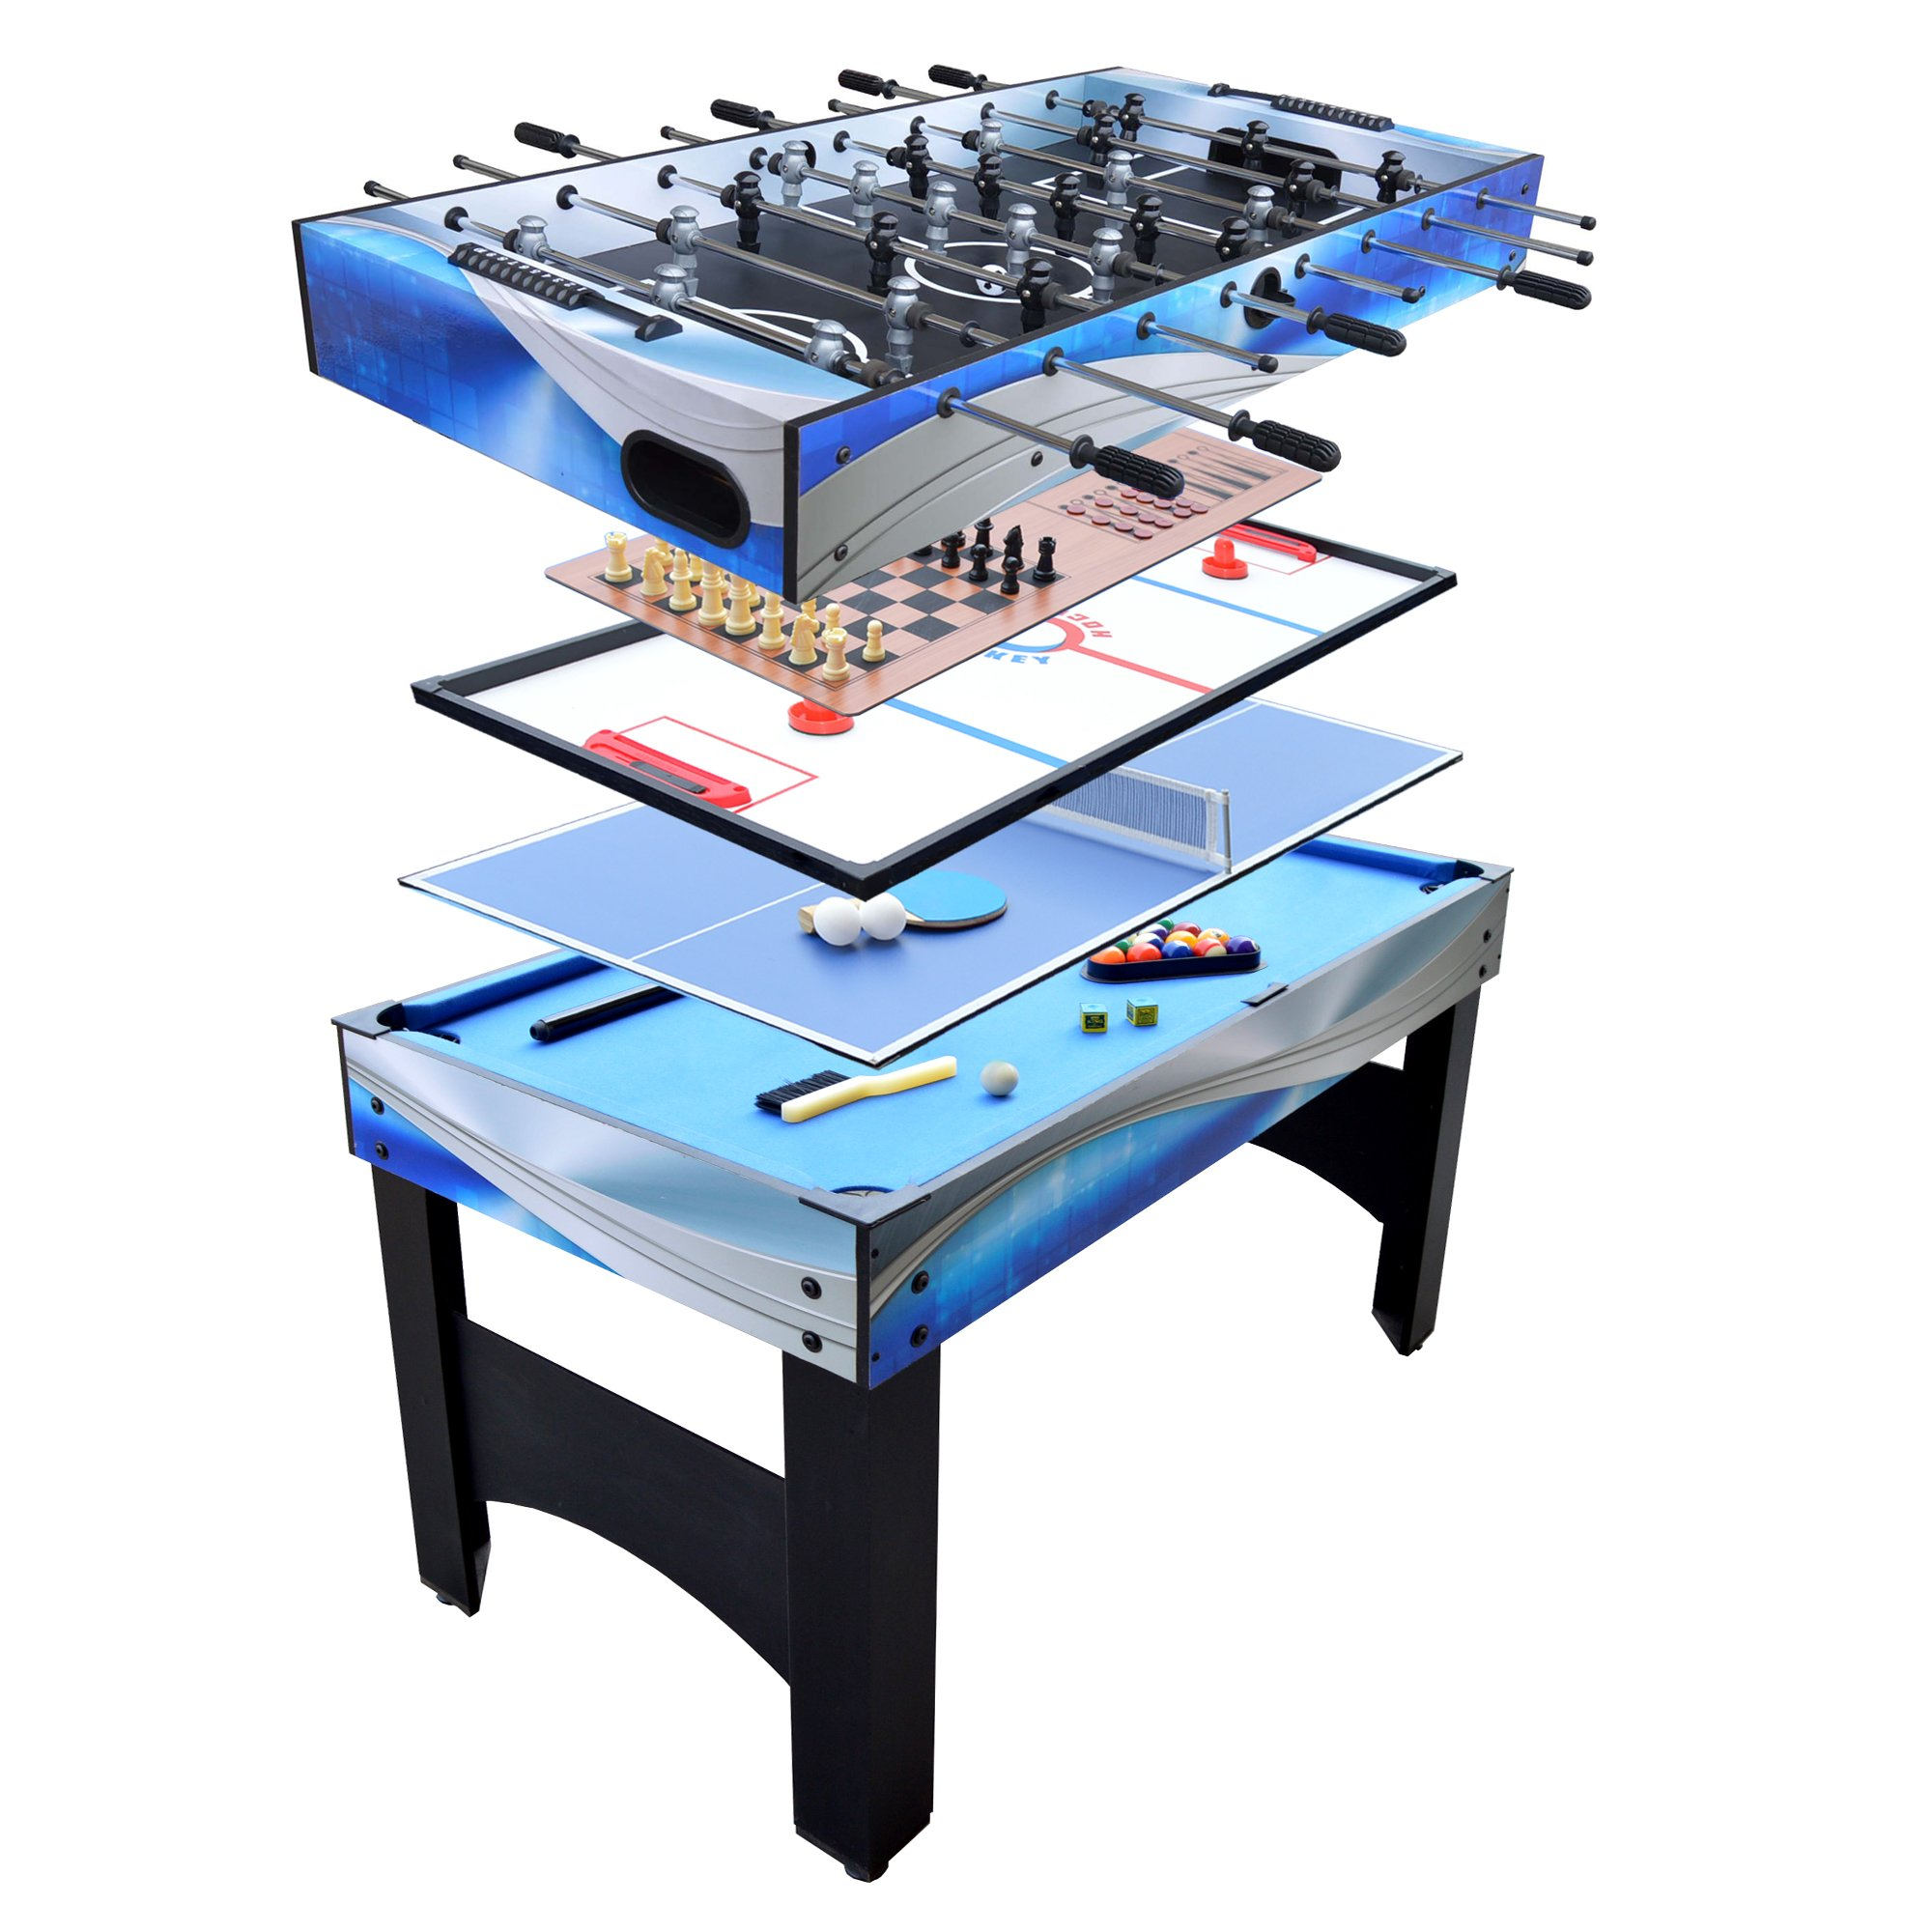 Hathaway Matrix 54-In 7-in-1 Multi Game Table with Foosball, Pool, Glide Hockey, Table Tennis, Chess, Checkers and Backgammon by Hathaway